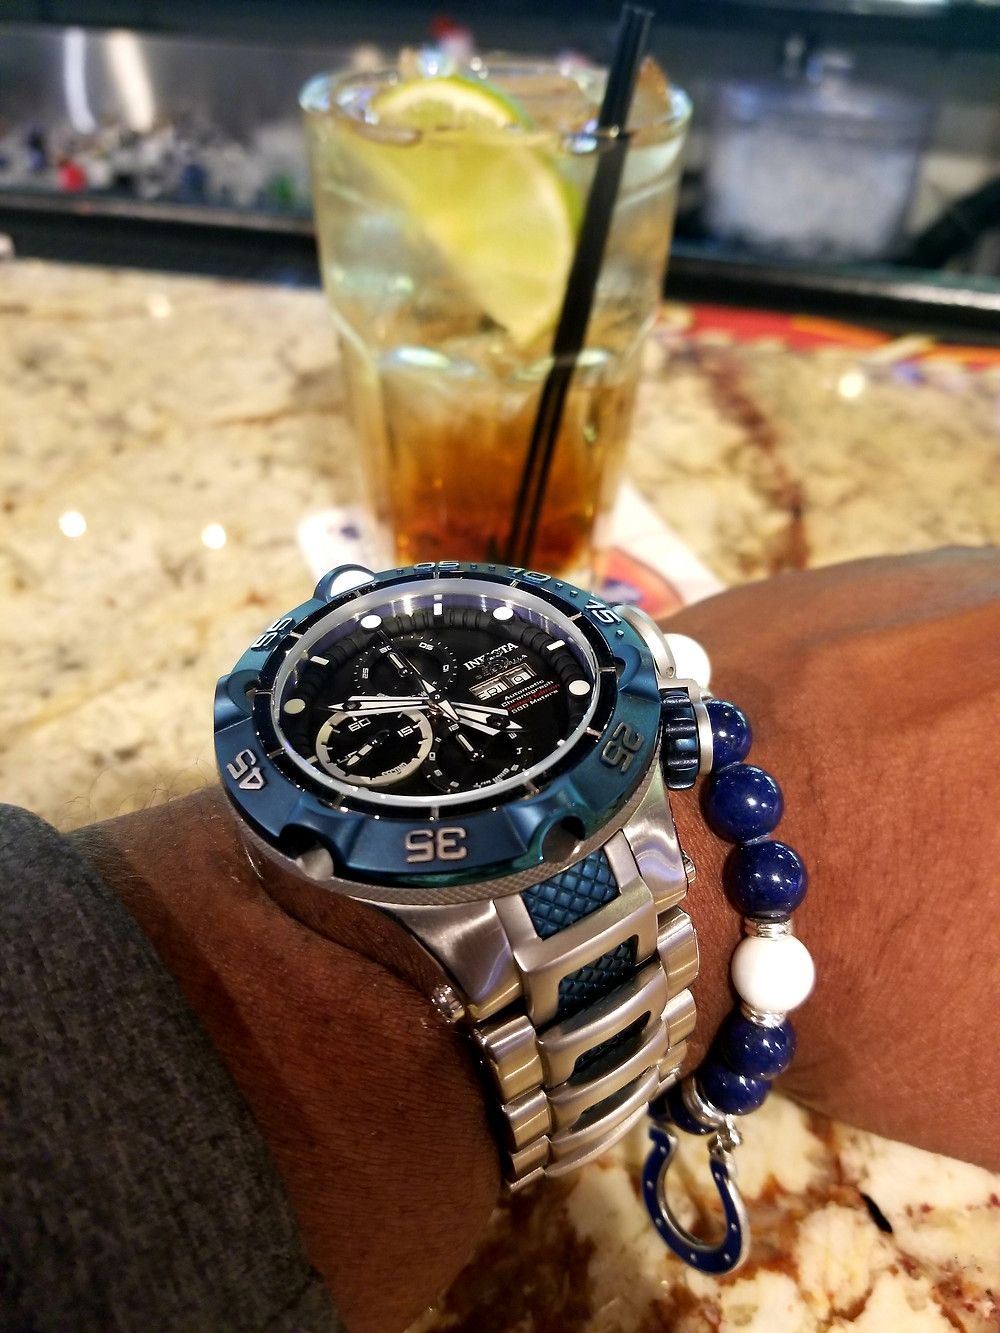 WOTD wrist shot of the Invicta, SubAqua Noma V, Automatic Chronograph, accompanied by custom-made, color-coordinated, bracelet by Beads by Gonzo.